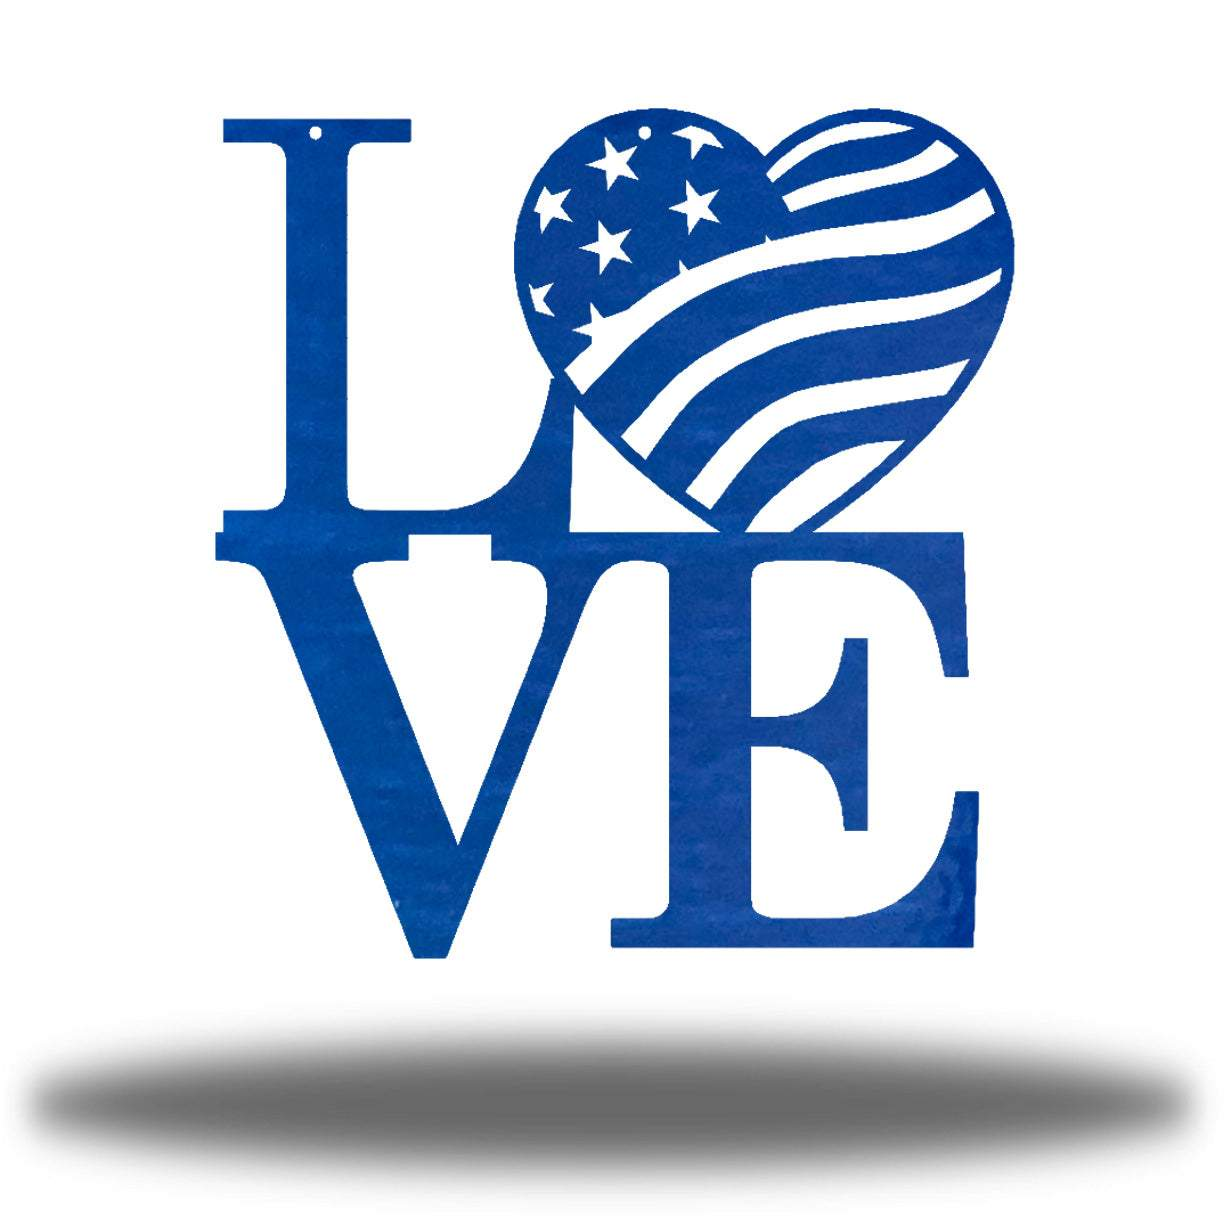 "Blue steel decorative sign that spells ""LOVE"" where 'O' is a heart-shaped USA flag"